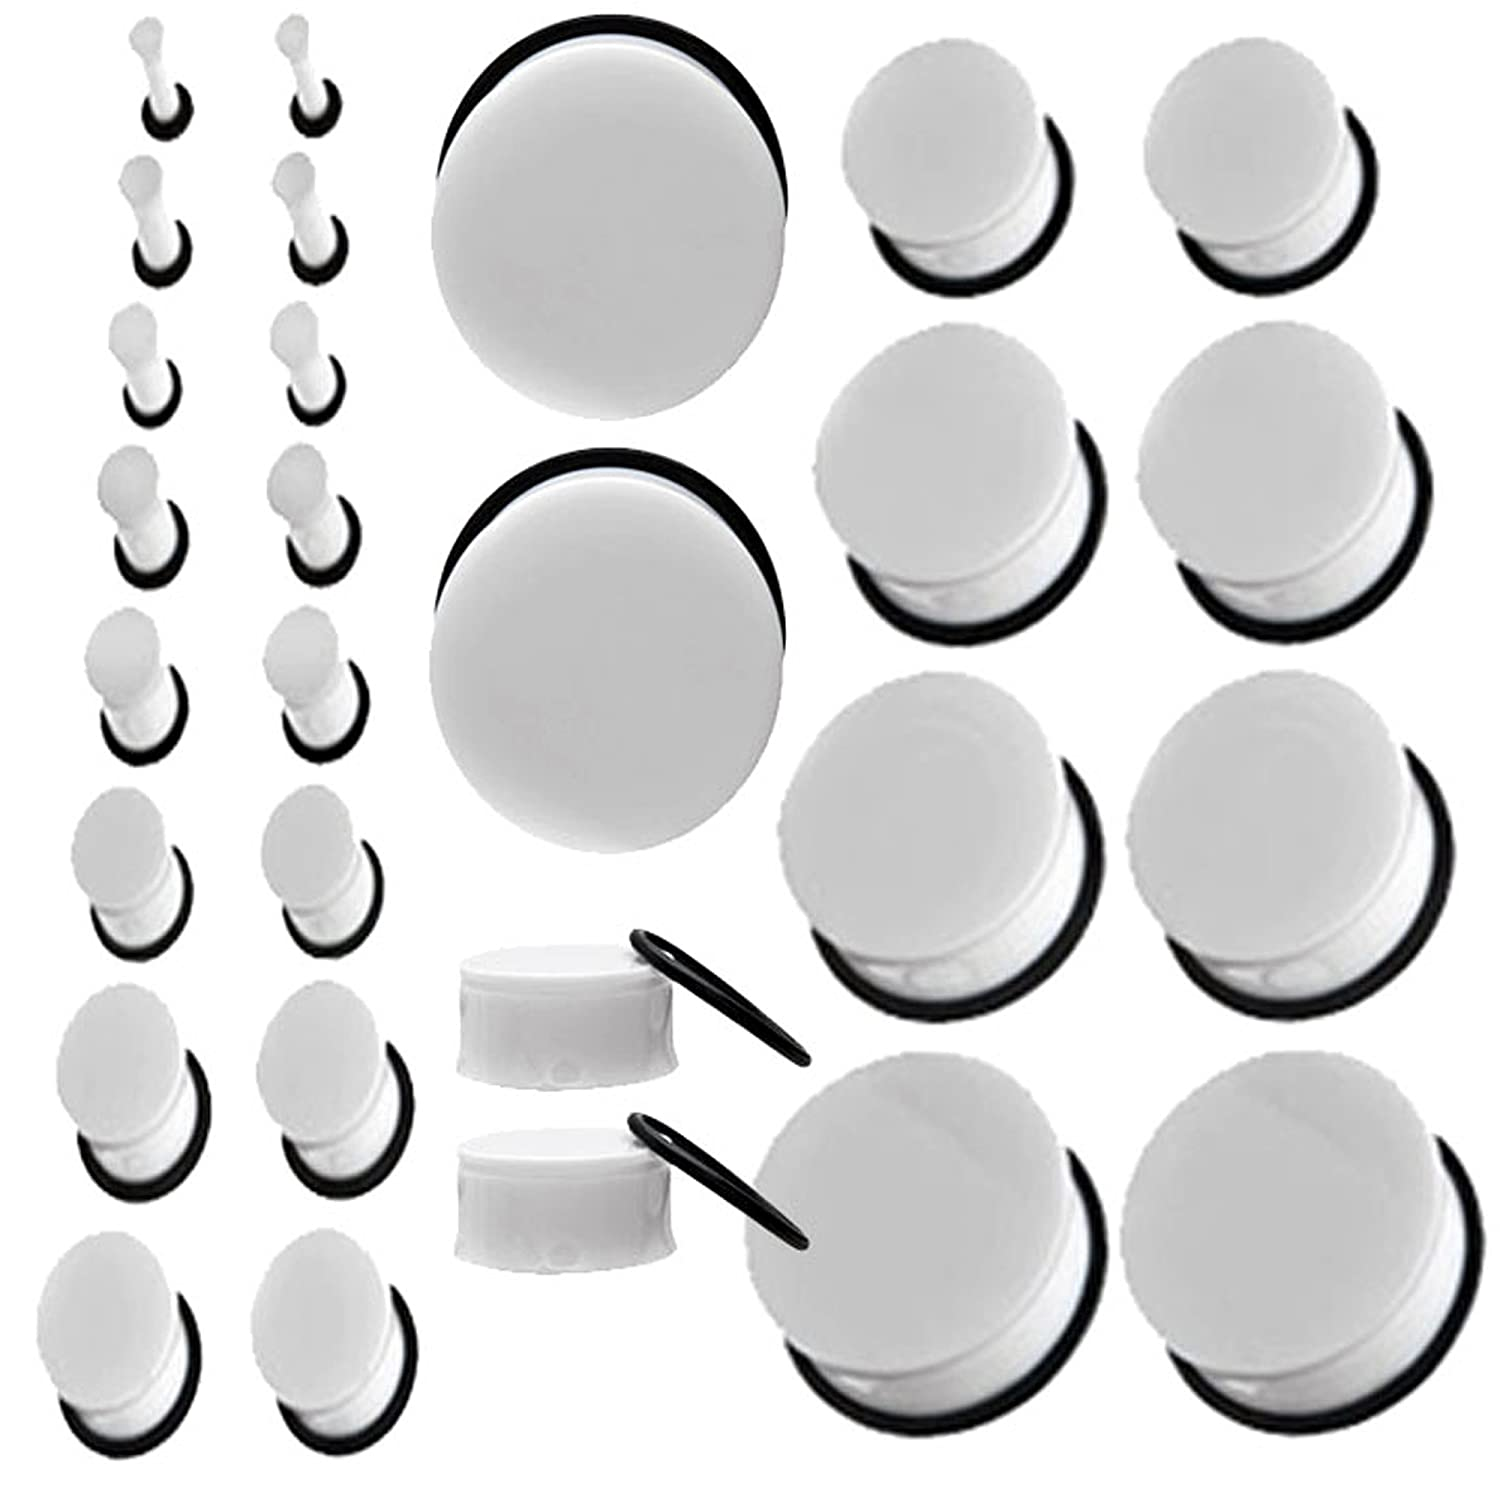 White Single Flare Acrylic Earlets Solid Ear Plugs 10G Gauge to 1-3/16 Inch (2.5mm to 30mm) 1 Pair Each Size MallGoodies Inc. ~V018